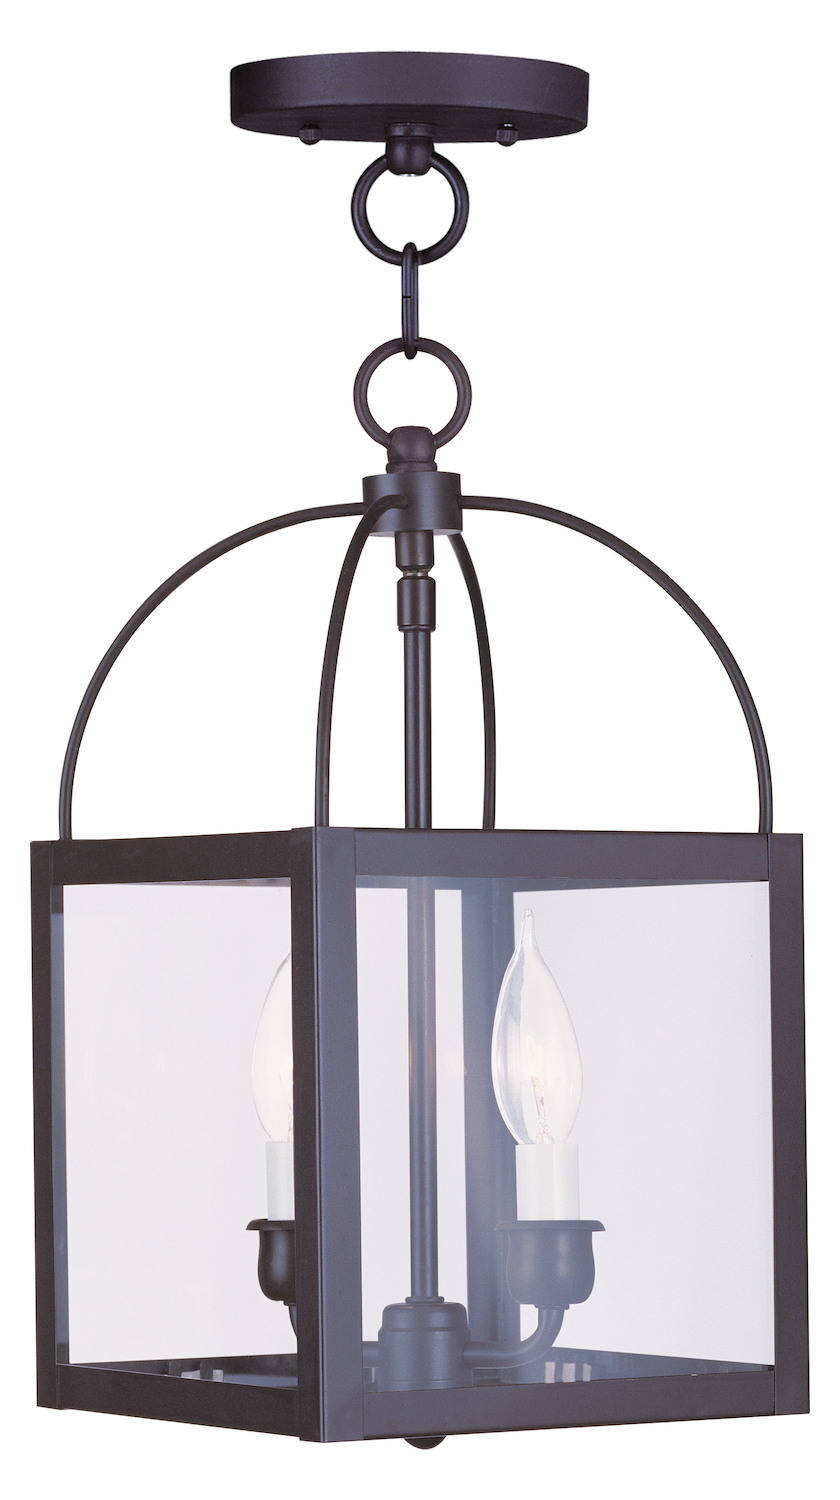 Foyer Semi Flush Mount Lighting : Livex lighting bronze foyer hall semi flush mount